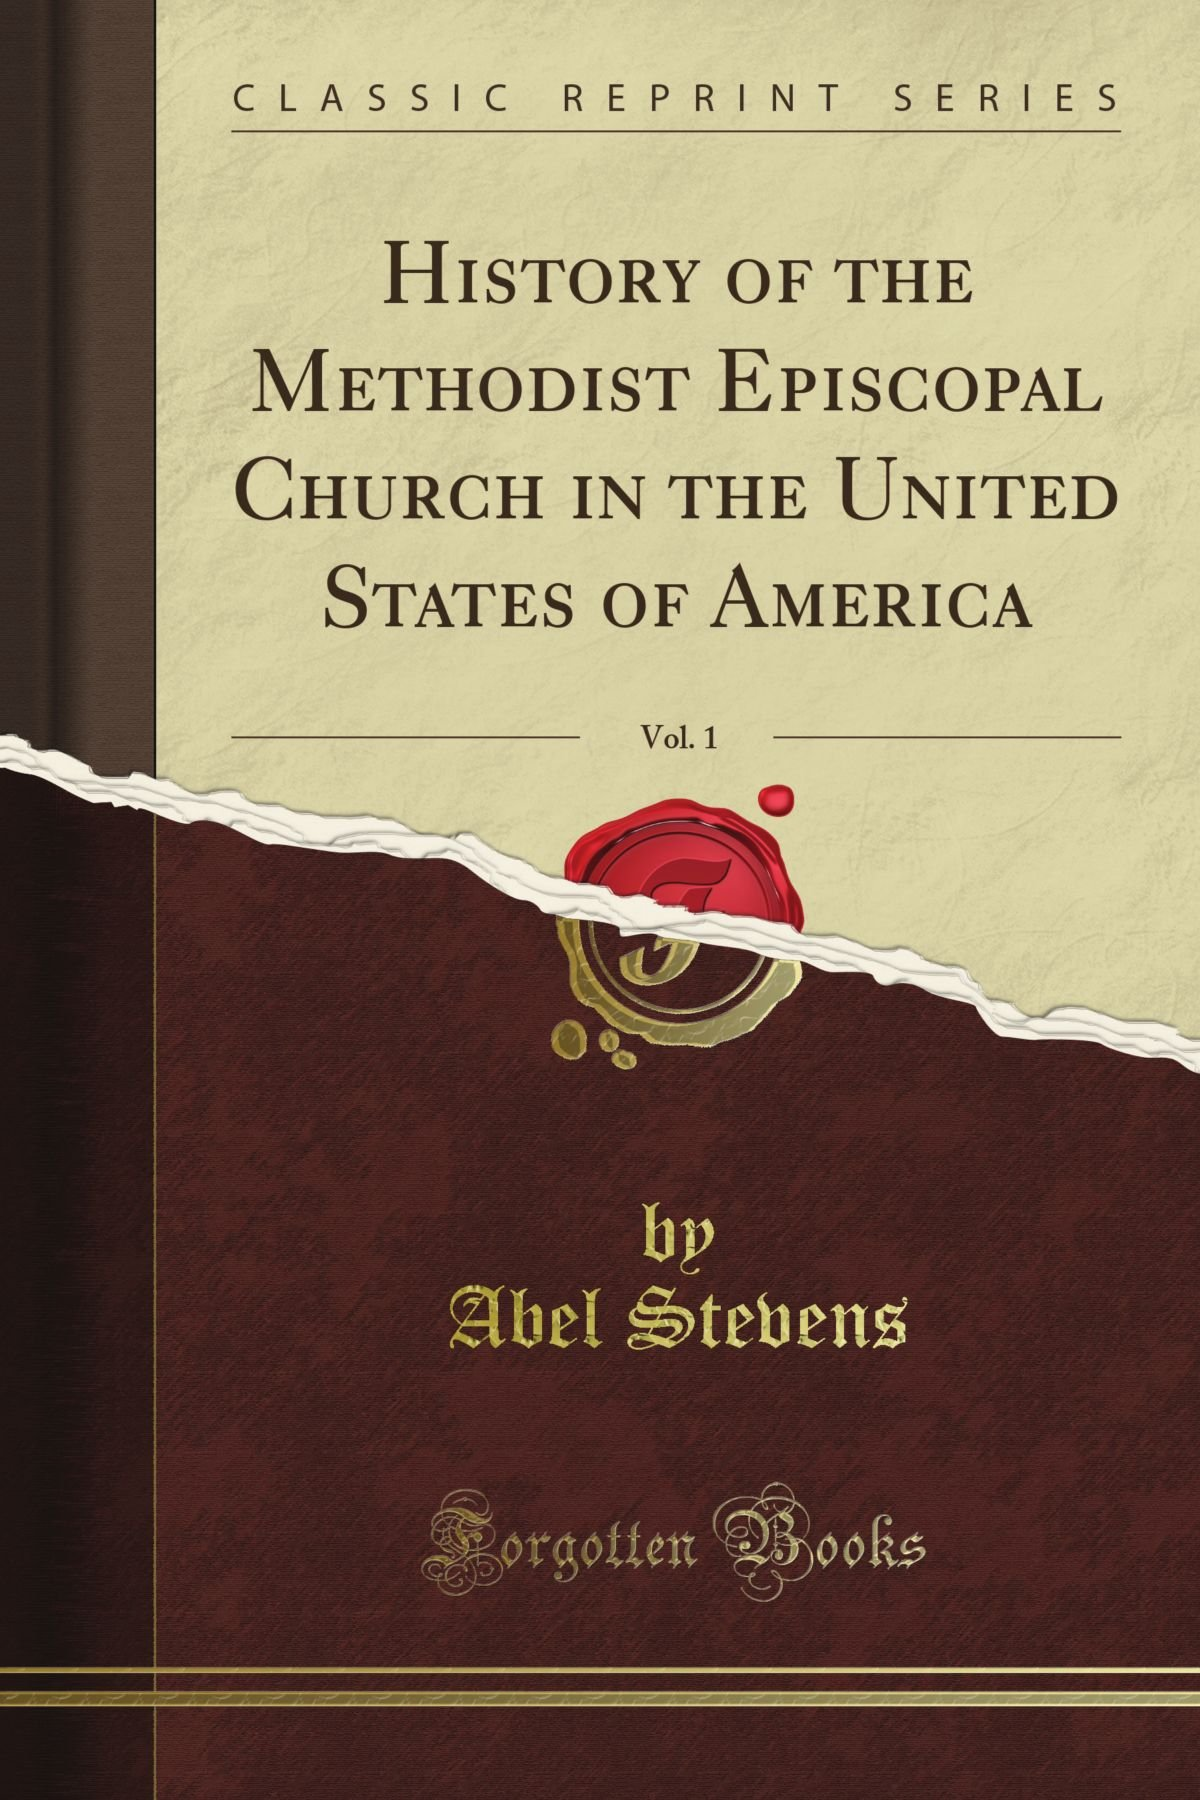 History of the Methodist Episcopal Church in the United States of America, Vol. 1 (Classic Reprint) PDF